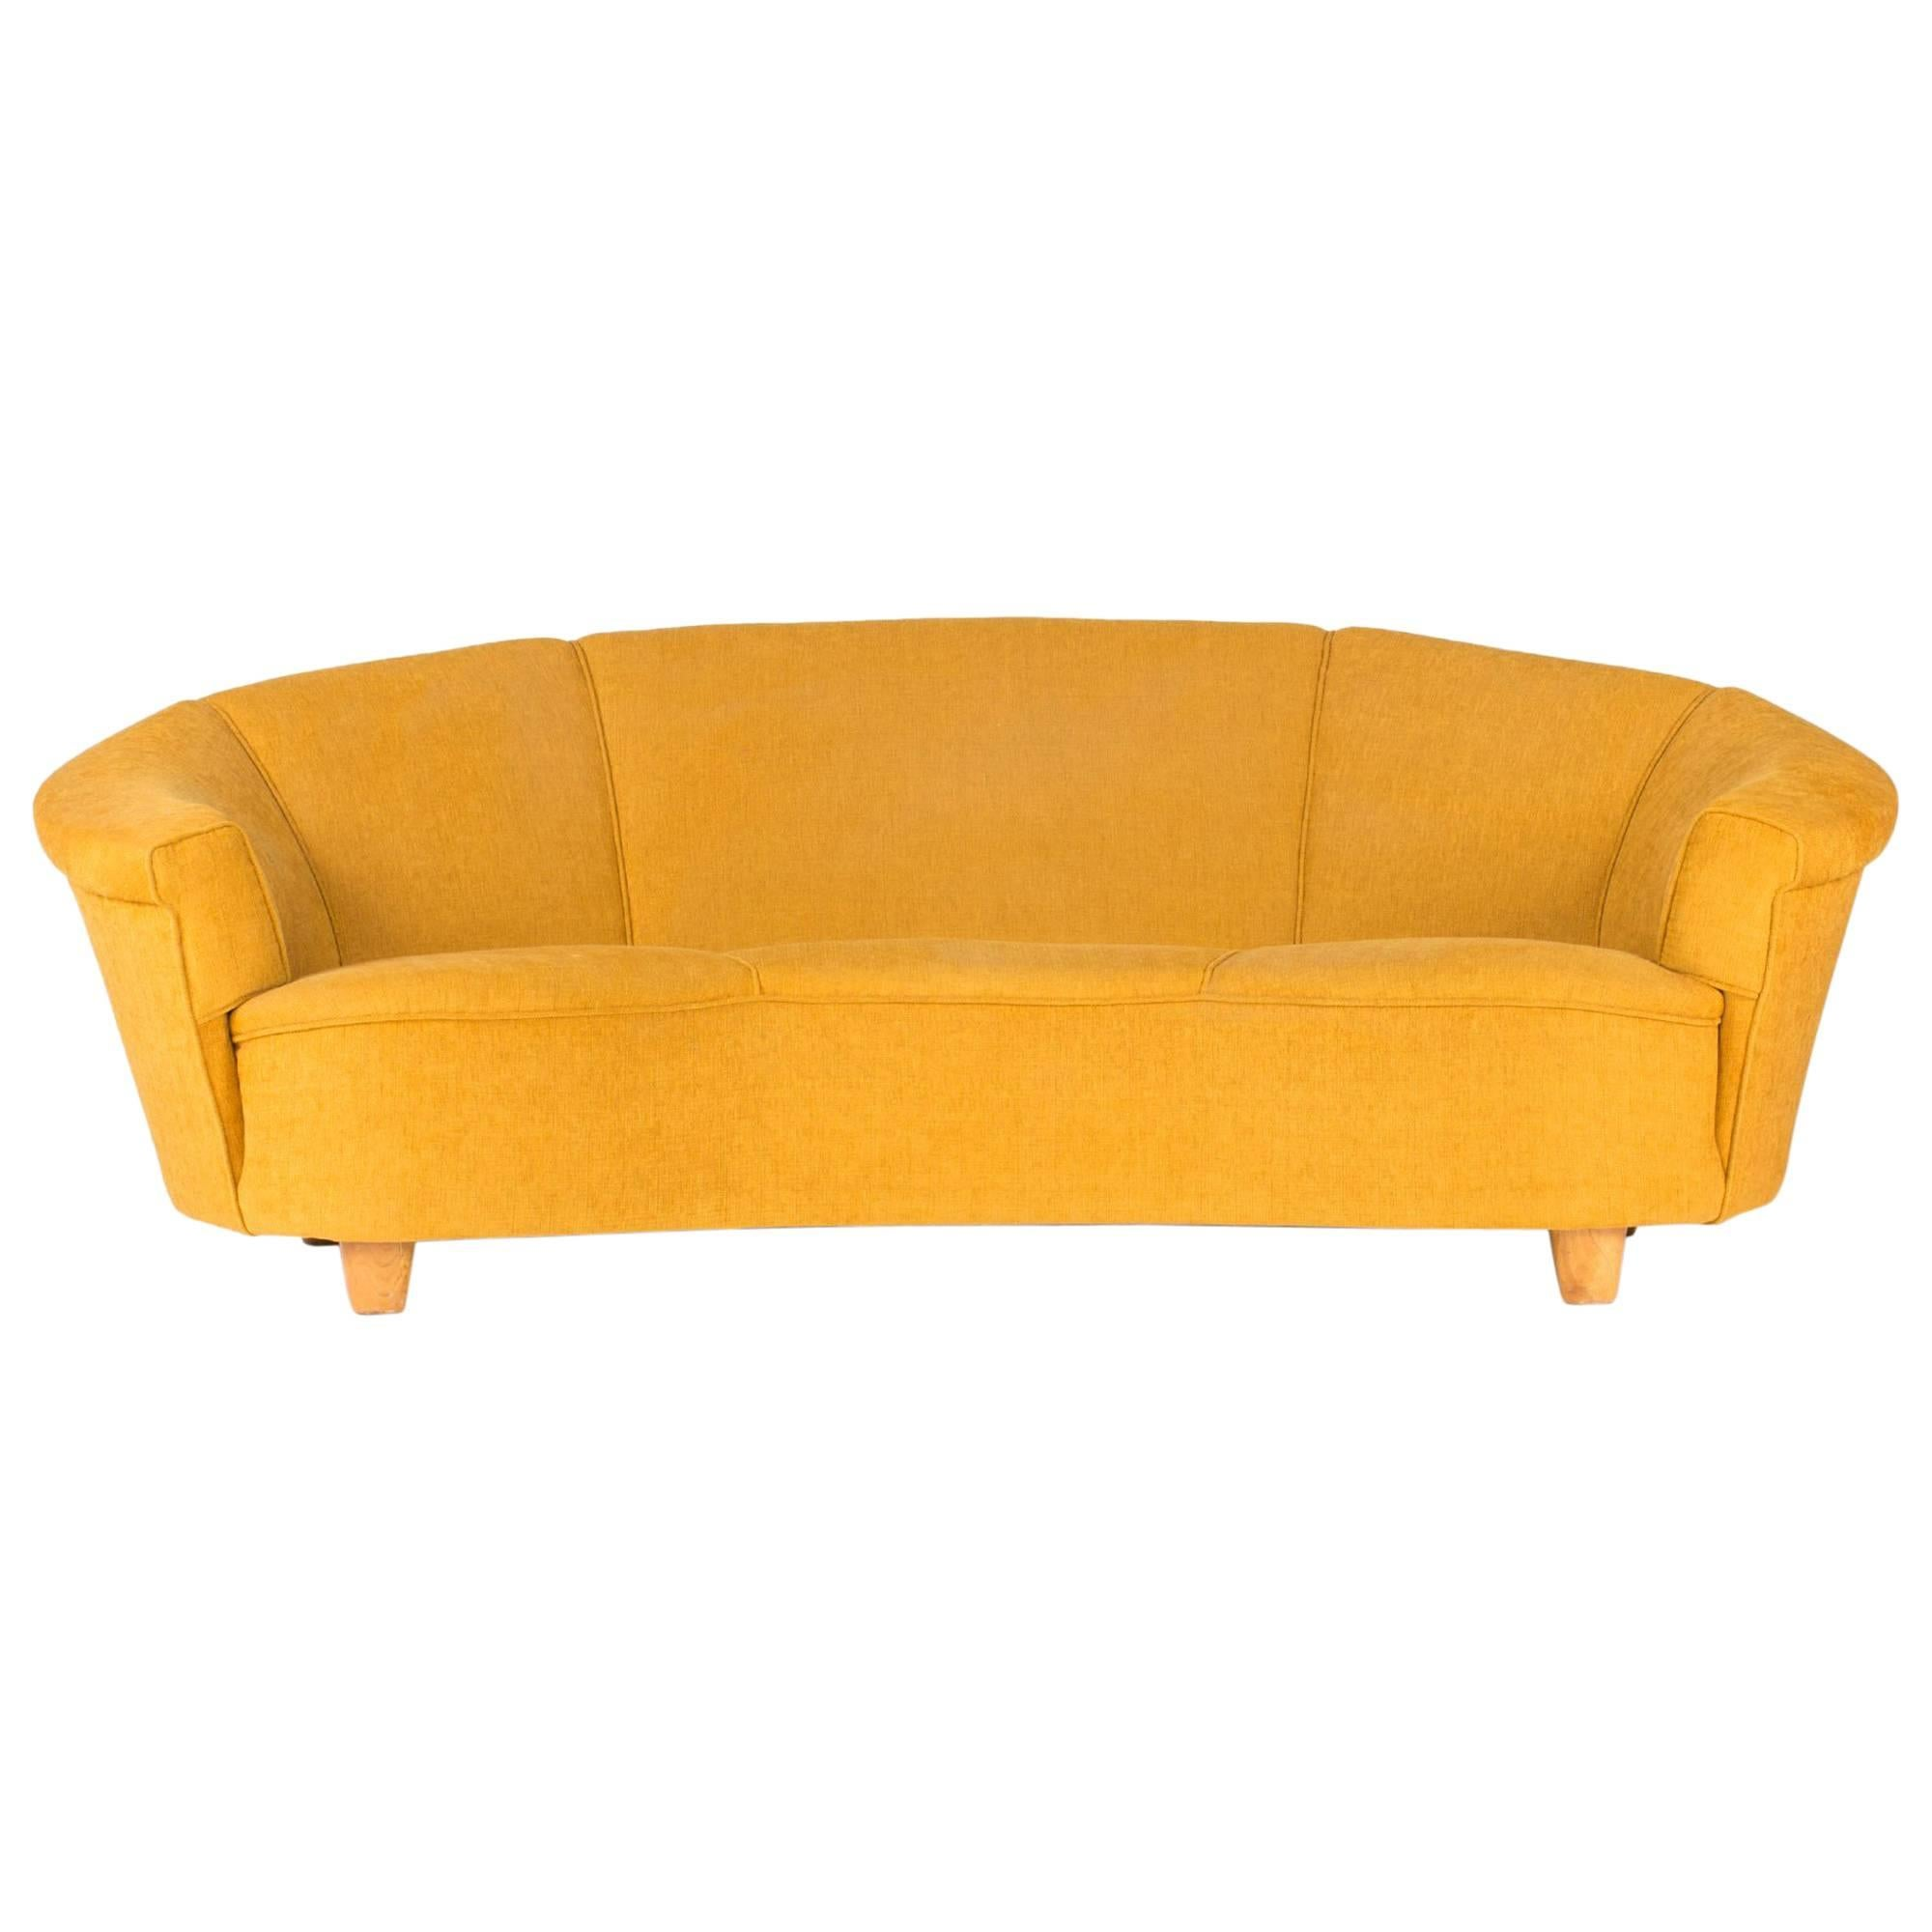 Curved Three Seat Sofa in the style of Otto Schulz